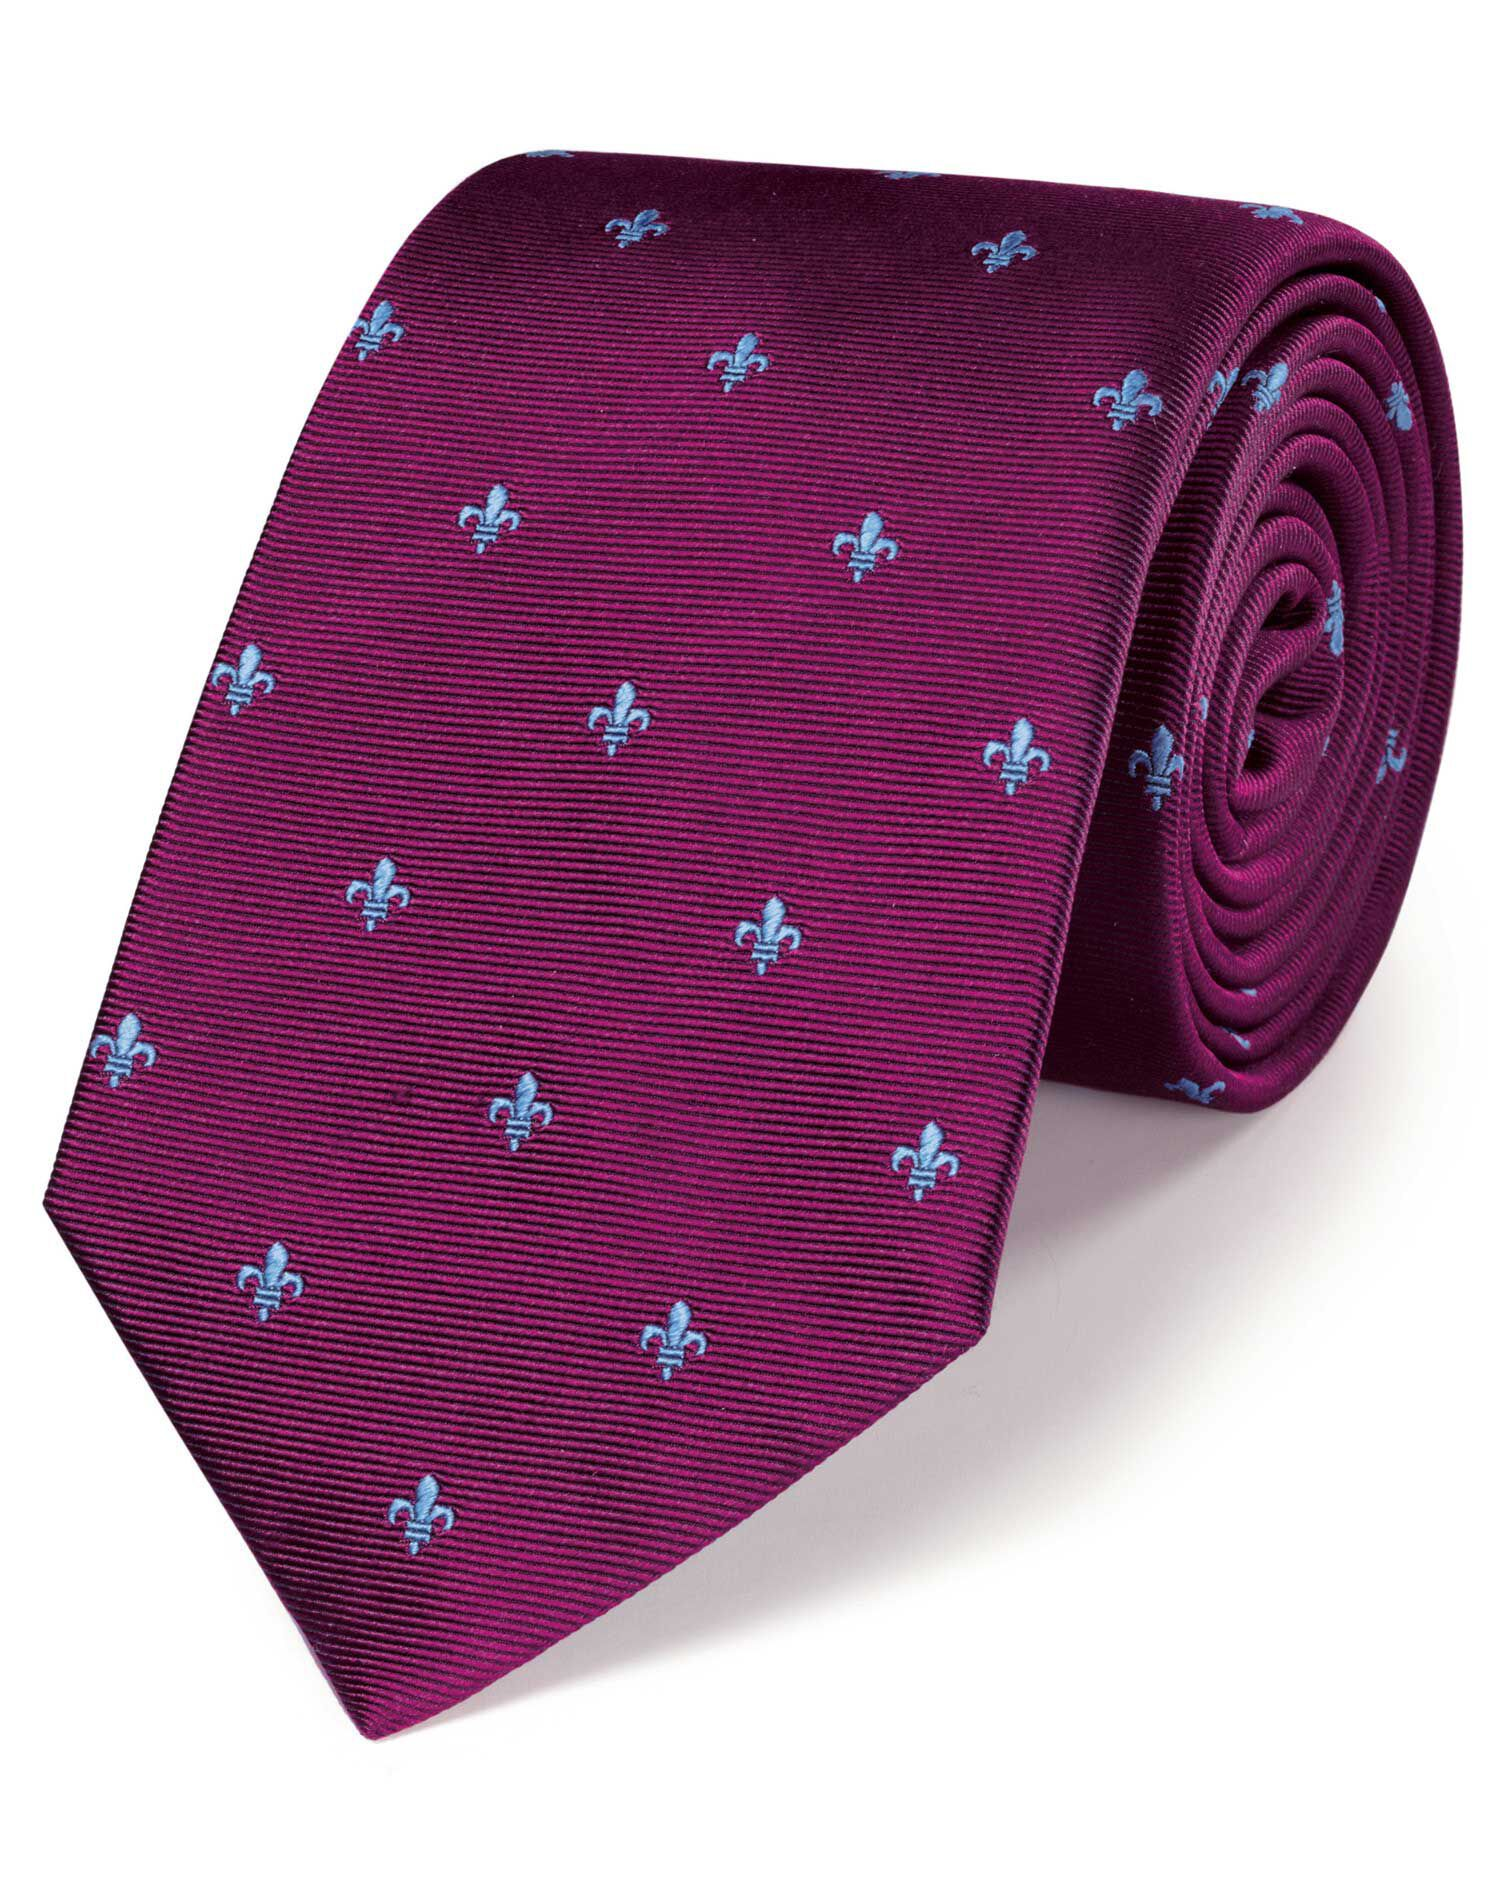 Charles Tyrwhitt Discount Codes go to 100loli.tk Total 21 active 100loli.tk Promotion Codes & Deals are listed and the latest one is updated on December 06, ; 18 coupons and 3 deals which offer up to 50% Off, $15 Off and extra discount, make sure to use one of them when you're shopping for 100loli.tk; Dealscove promise you'll get the best price on products you want.